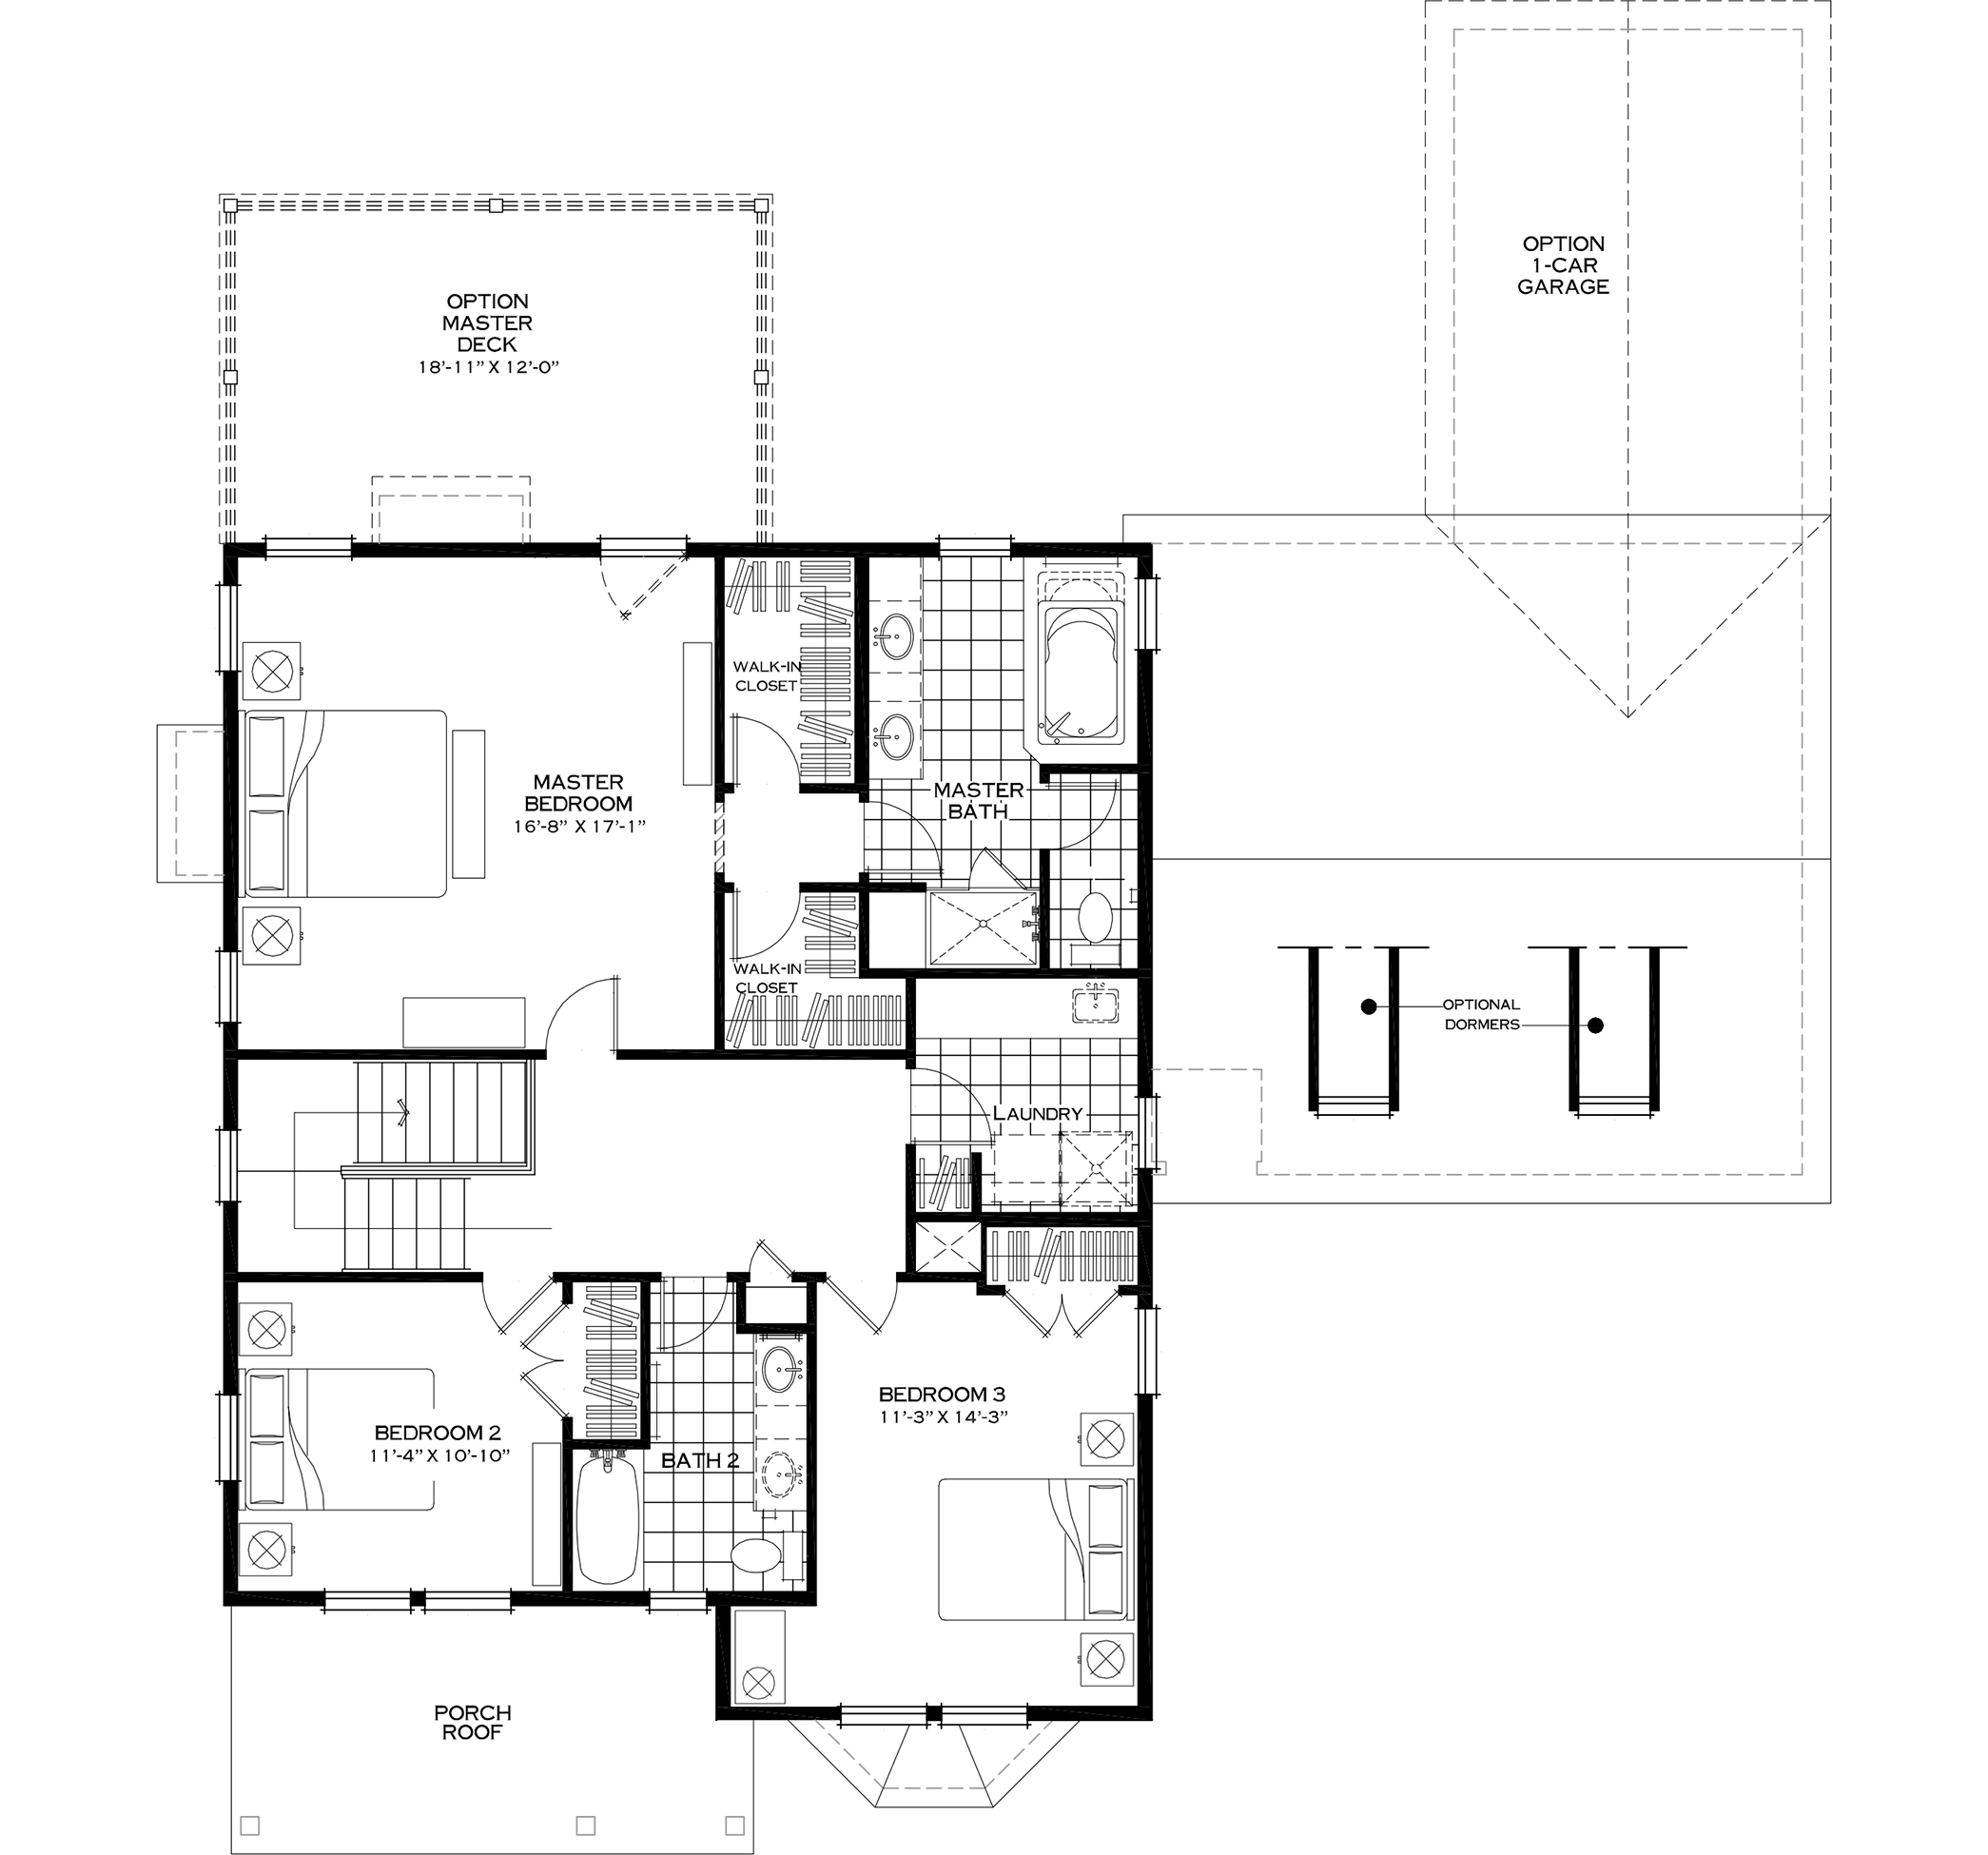 Second Floor Alternative Layout